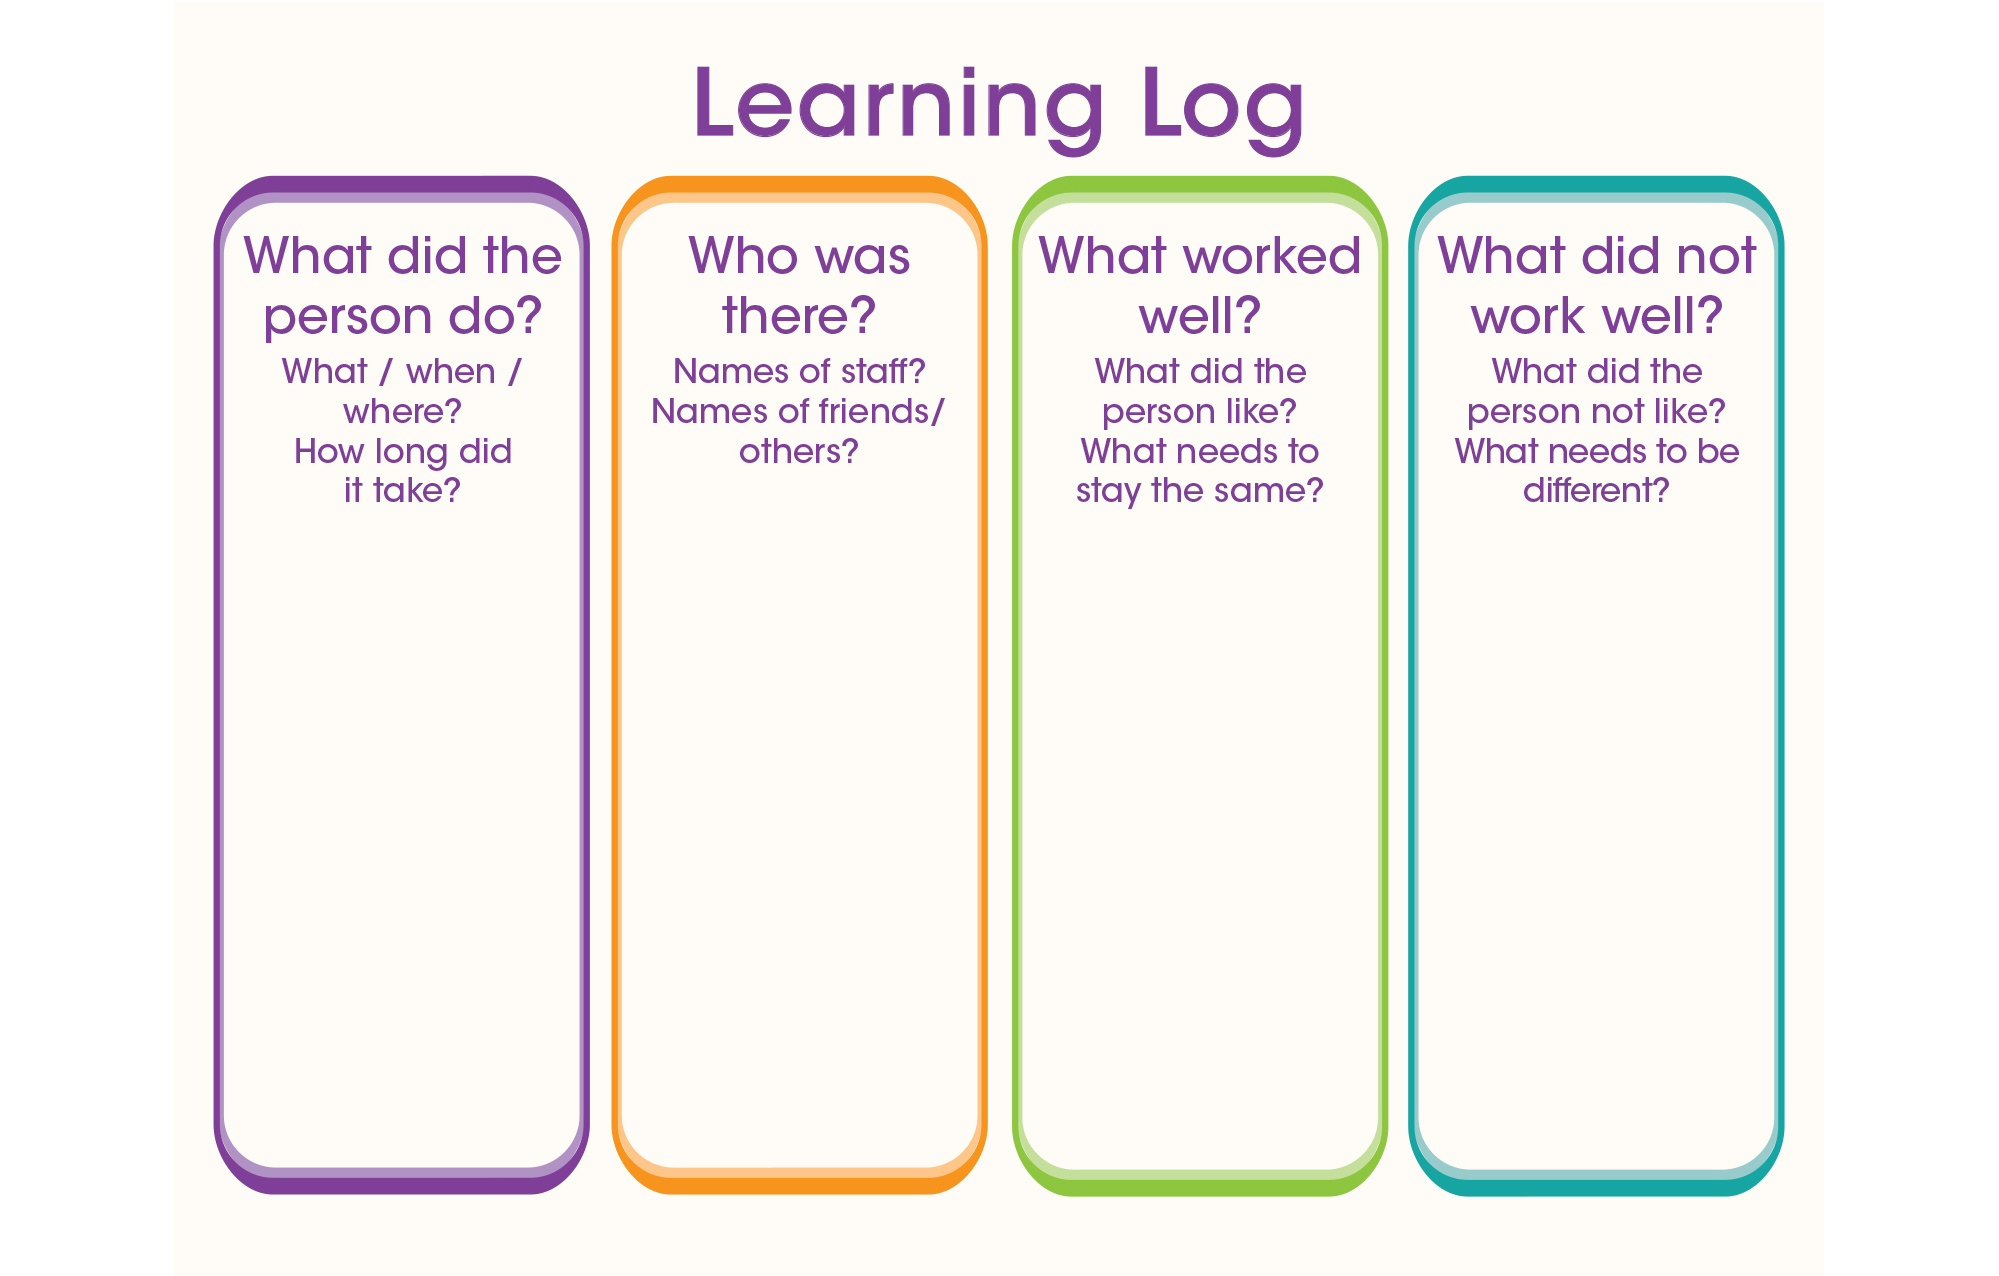 The Learning Log